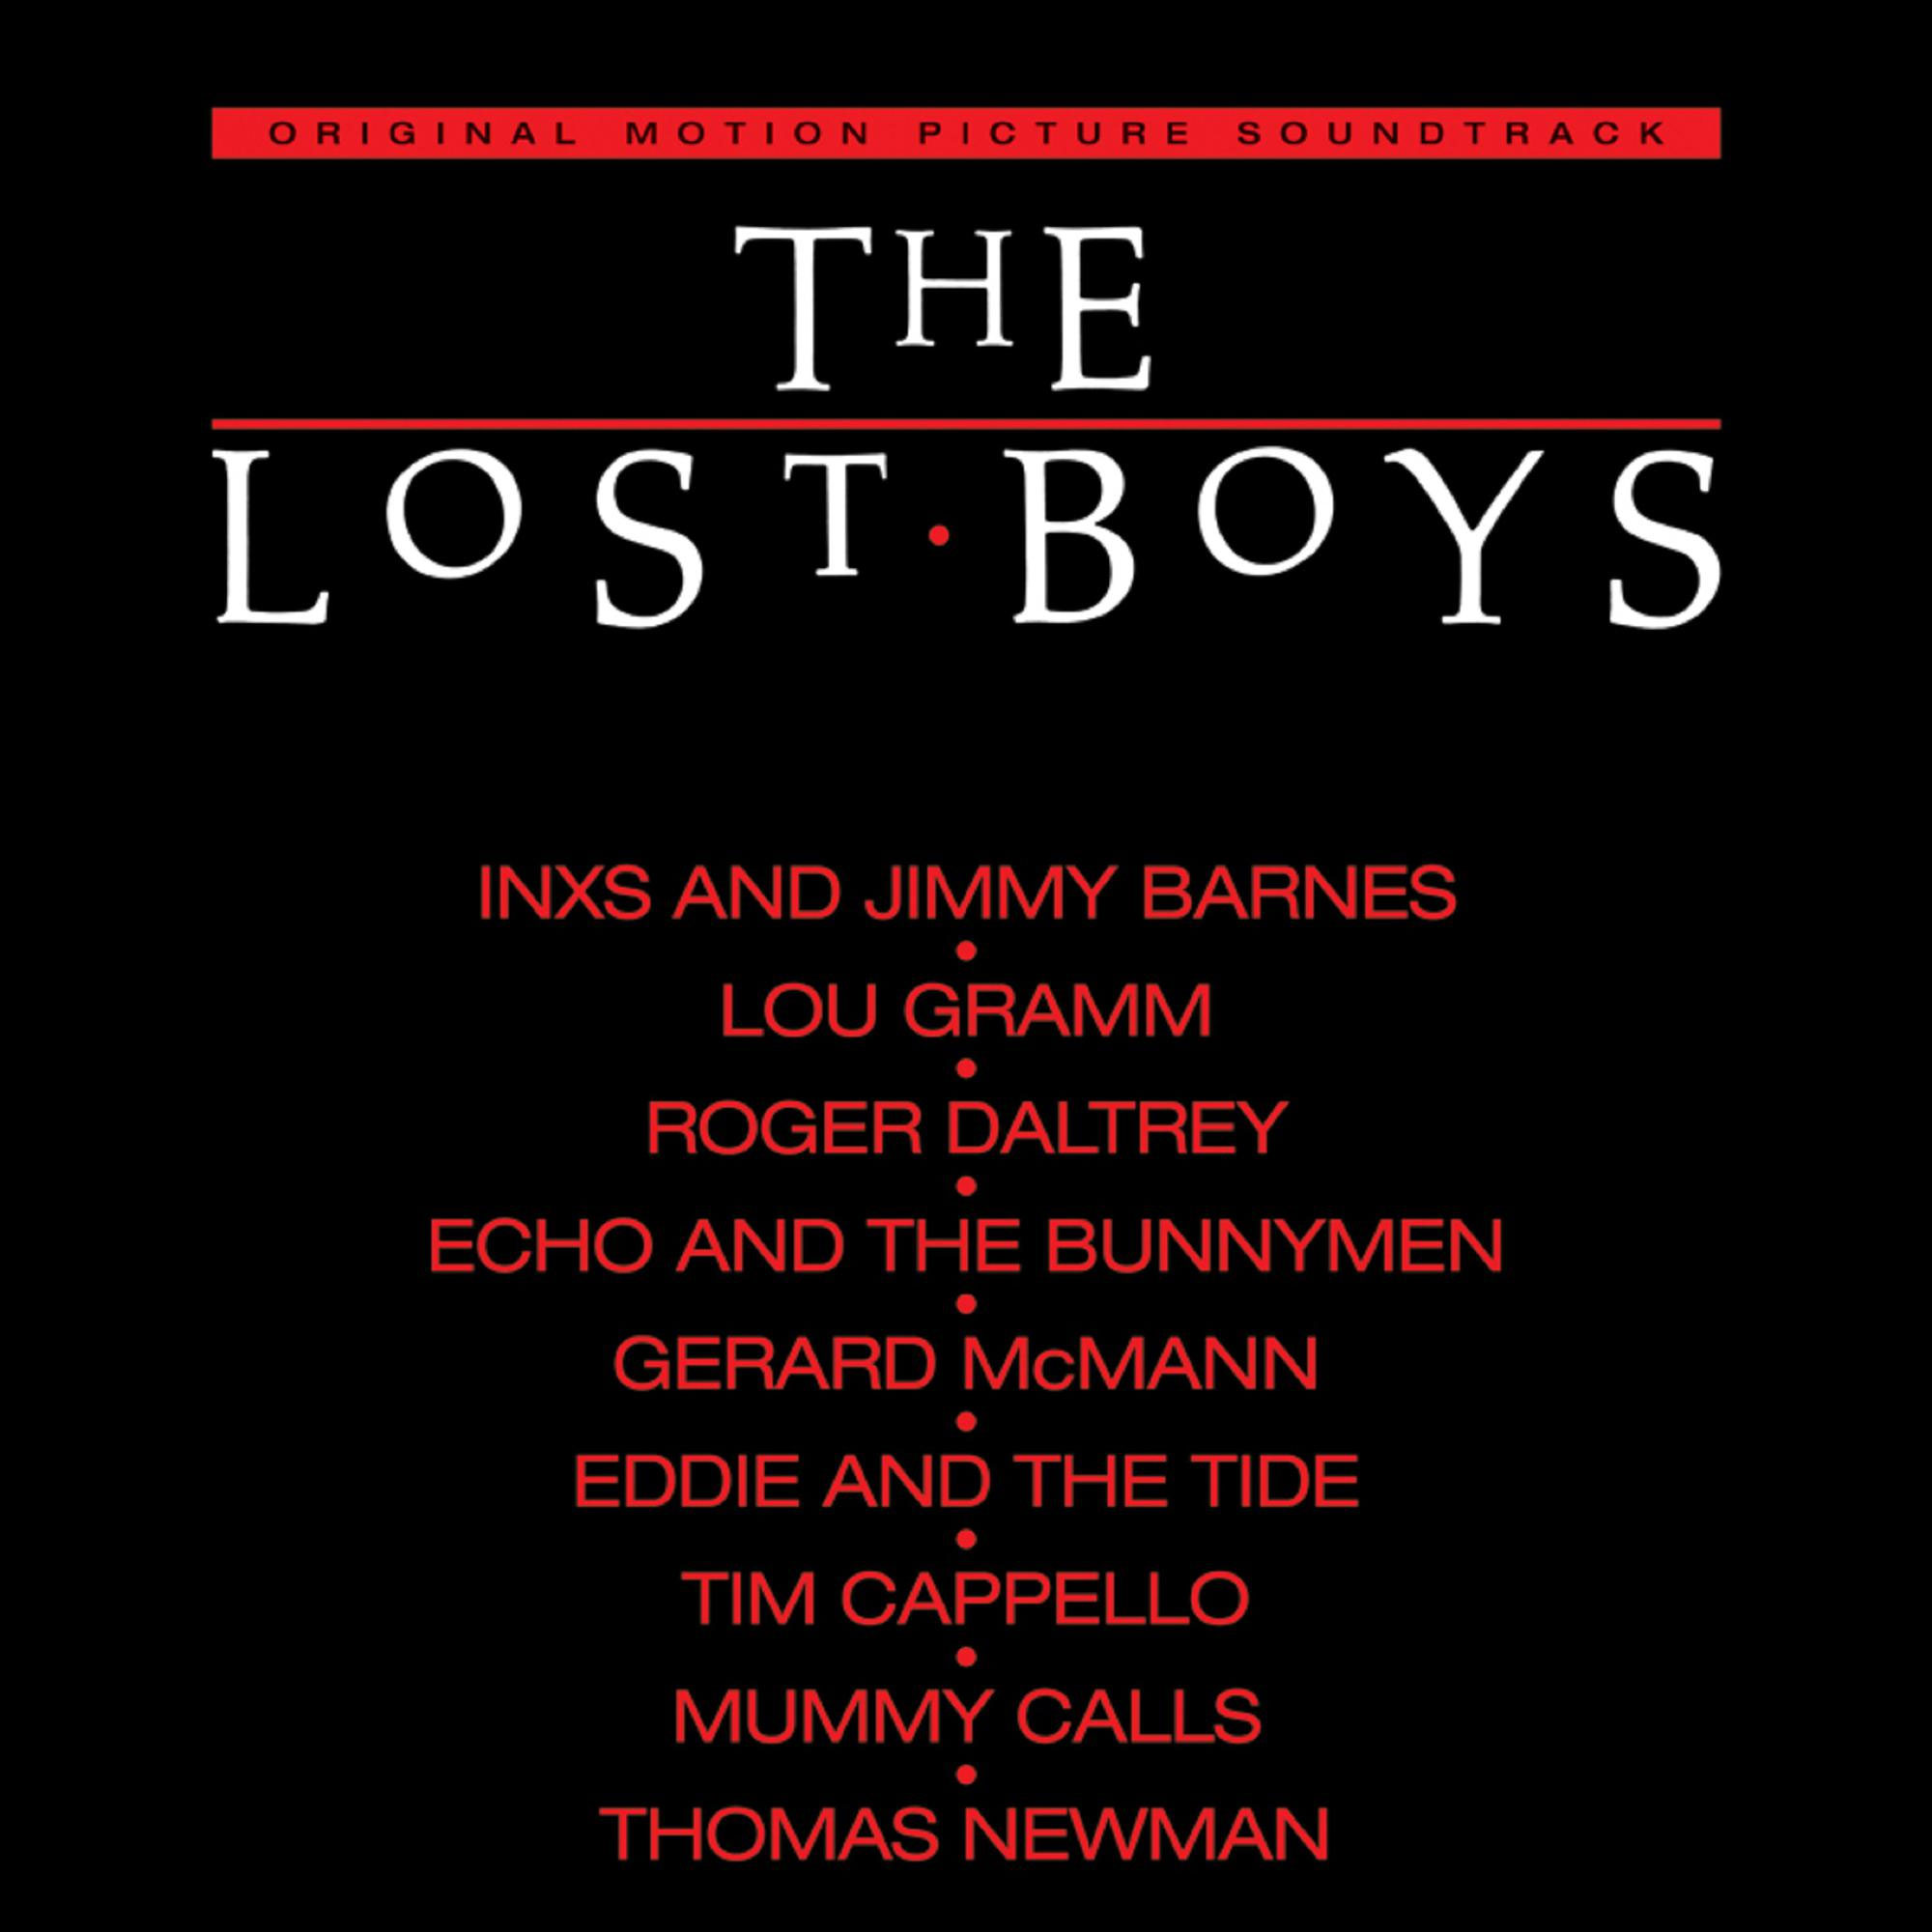 The Lost Boys - Original Motion Picture Soundtrack 180g LP (Gold Vinyl)